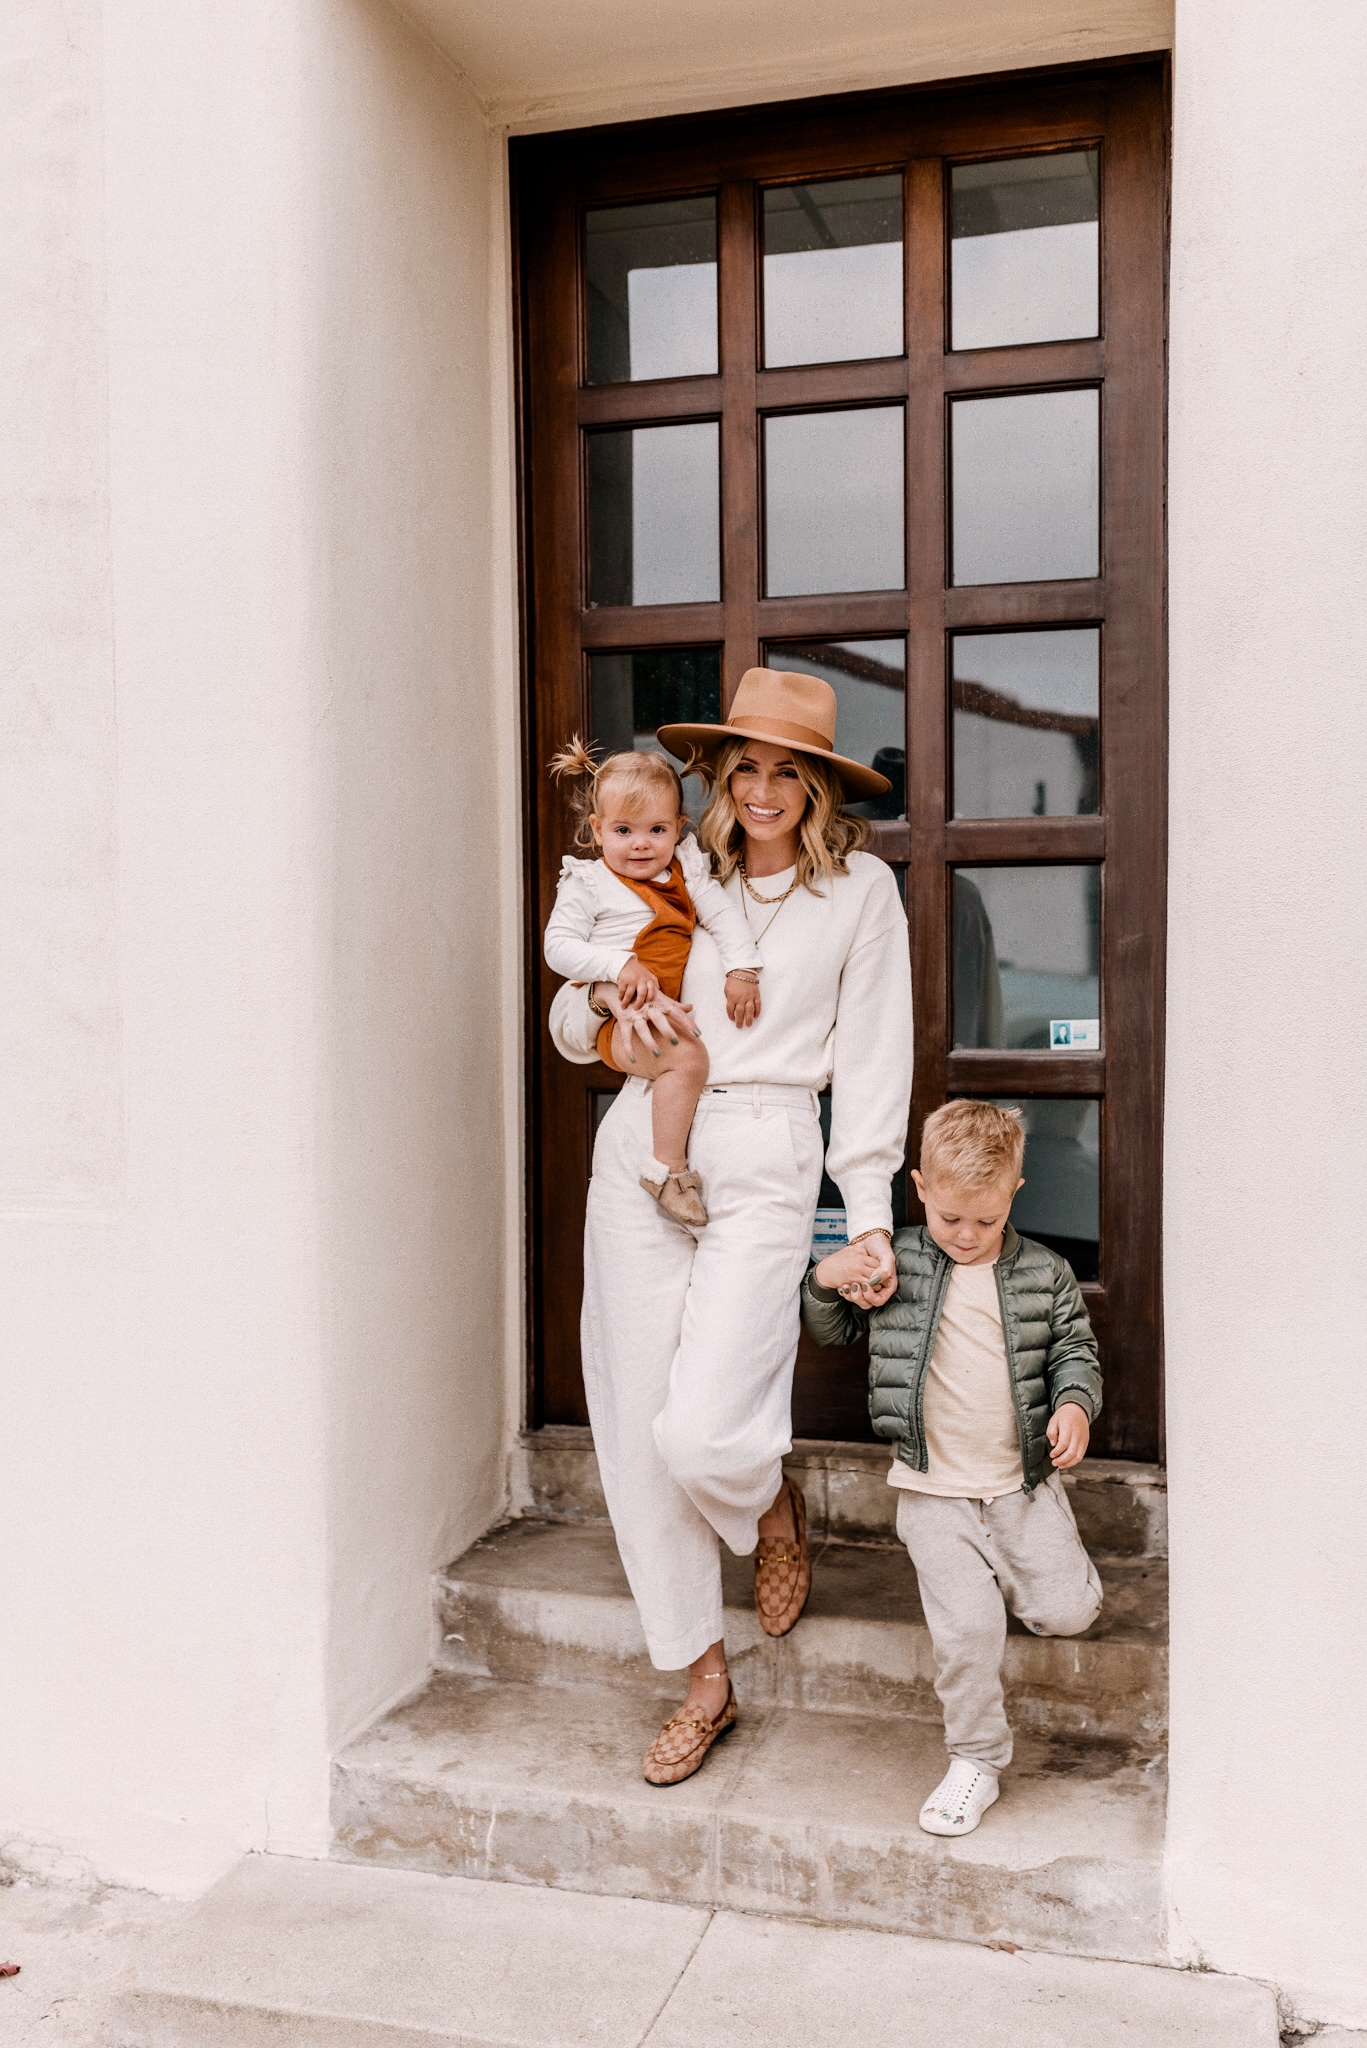 Fall fedora Hats |Kids Winter Clothes by popular San Diego motherhood blog, Navy Grace: image of a mom and her two young kids standing together on some cement steps.